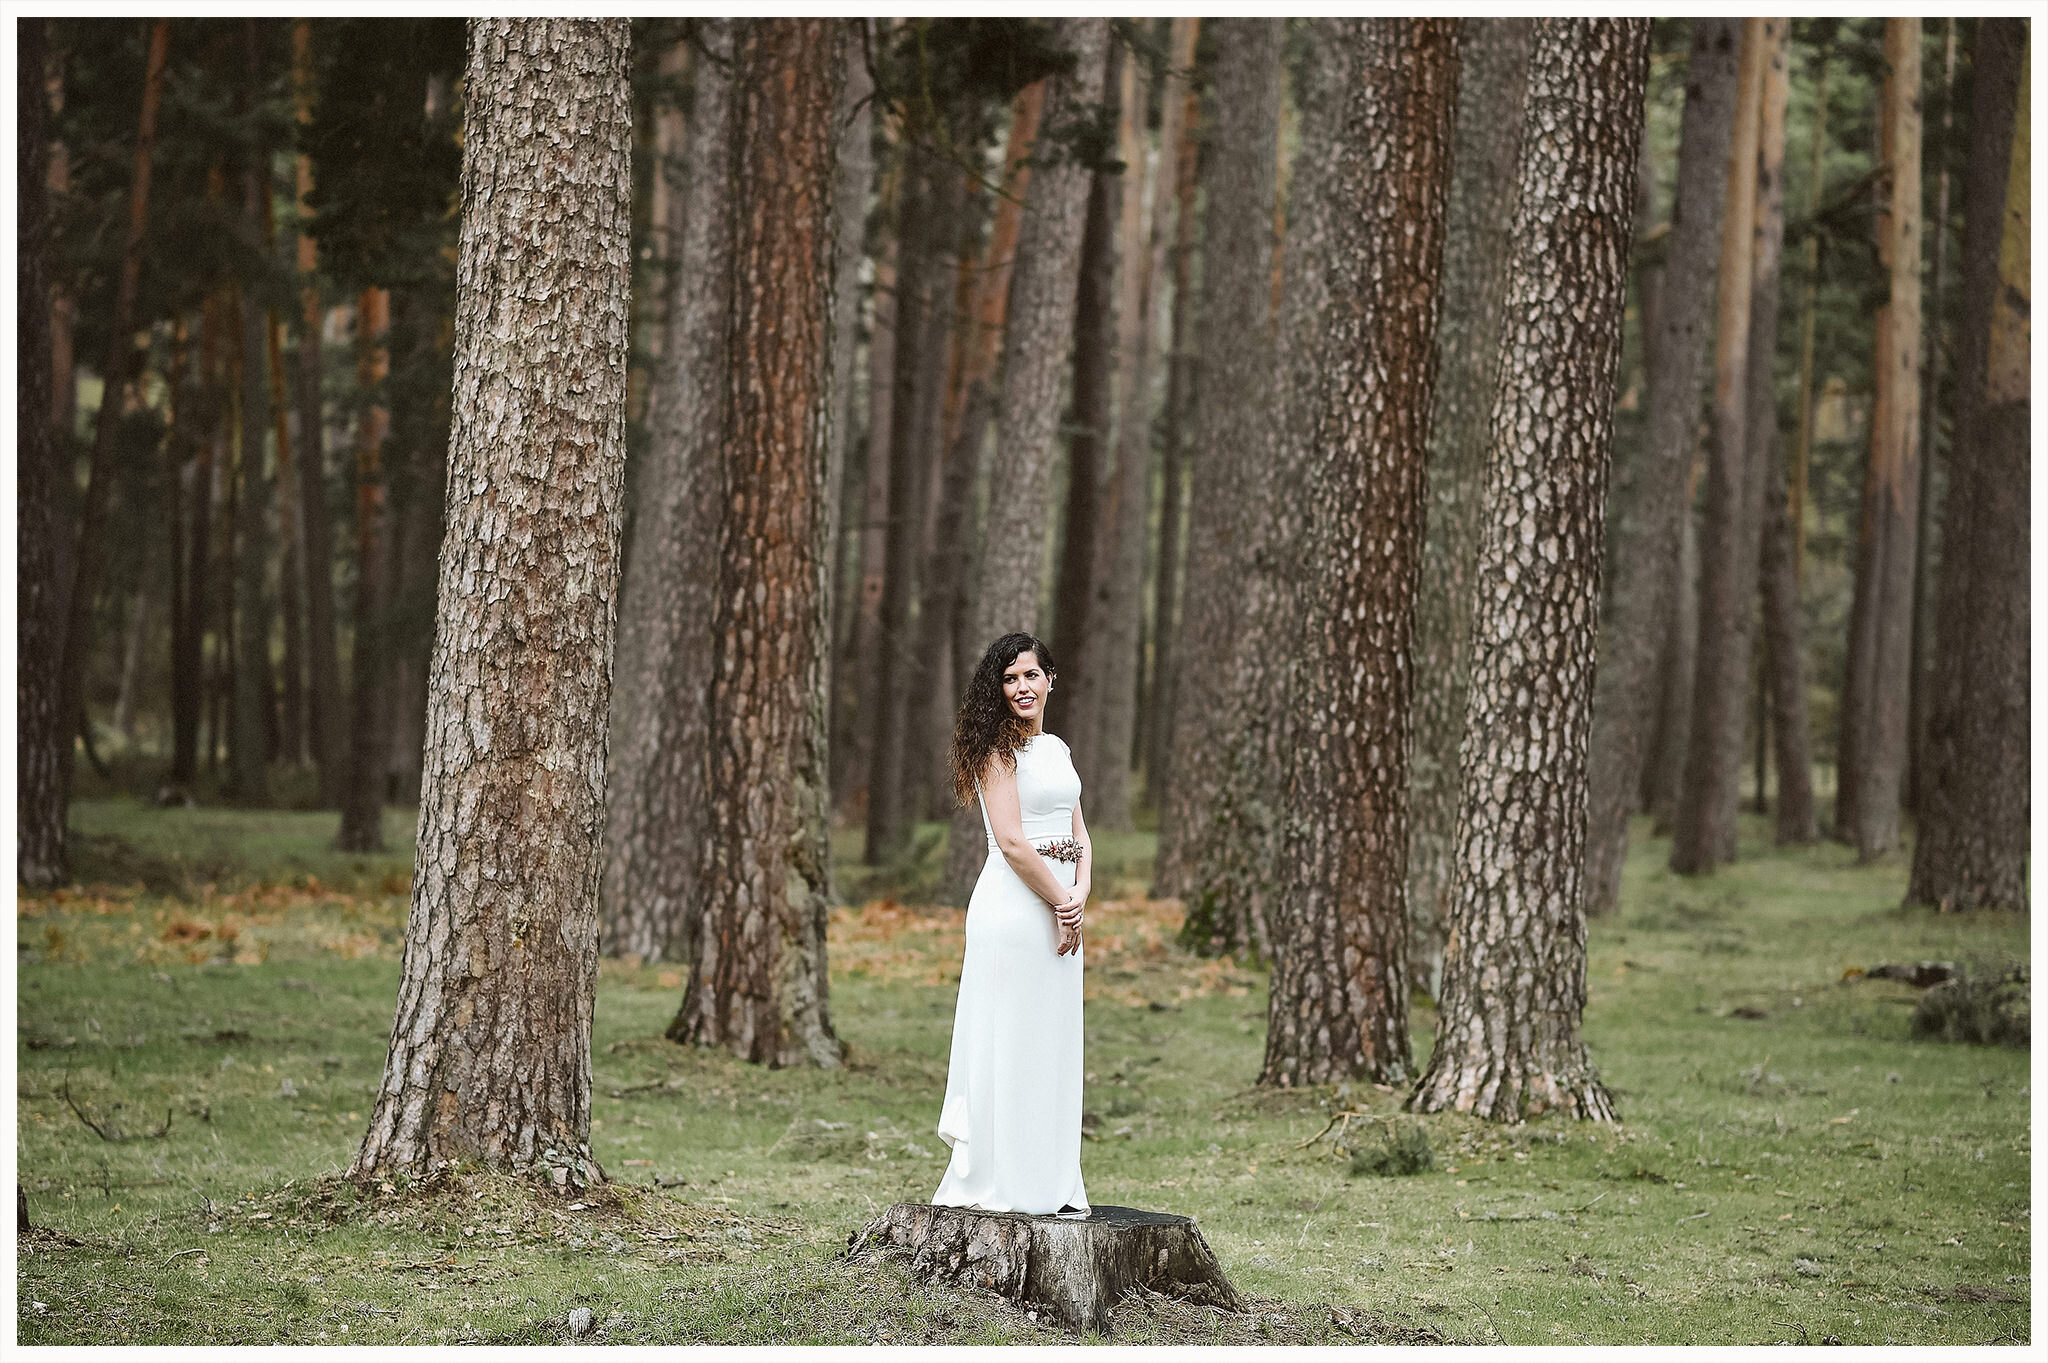 dreamsanddreamers.com-trash-the-dress-in-natura-13.jpg